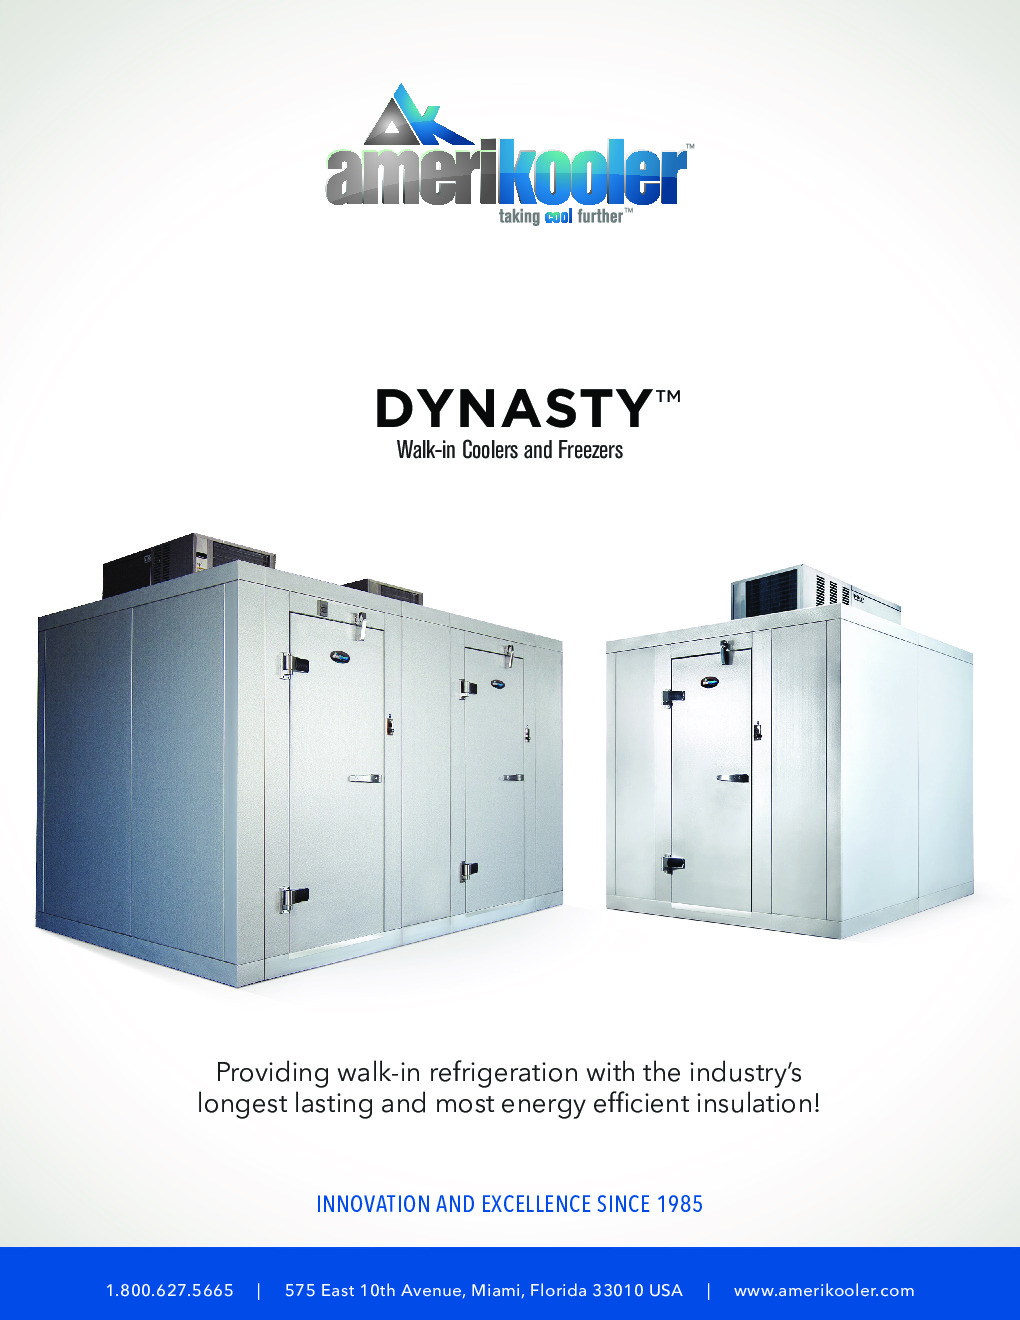 AmeriKooler DW091277N-4/8 Indoor 9' X 12' Walk-In, 8' L Cooler without Floor and 4' L Freezer, Box Only